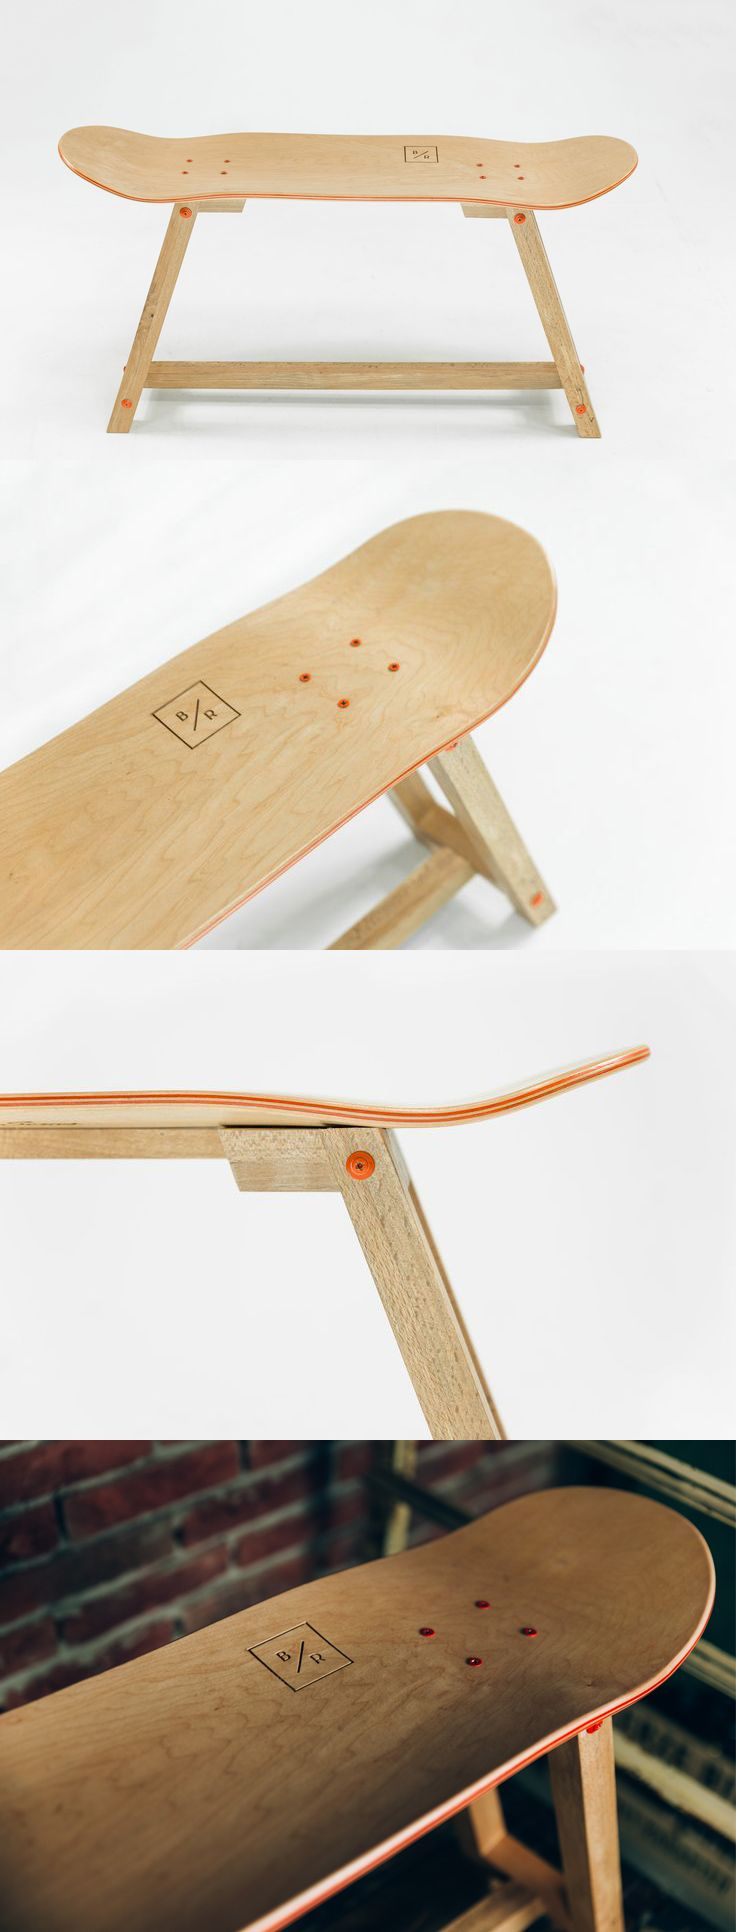 """The Wood one"" - Skateboard Furniture by @bakedroast. #skateboard #furniture"